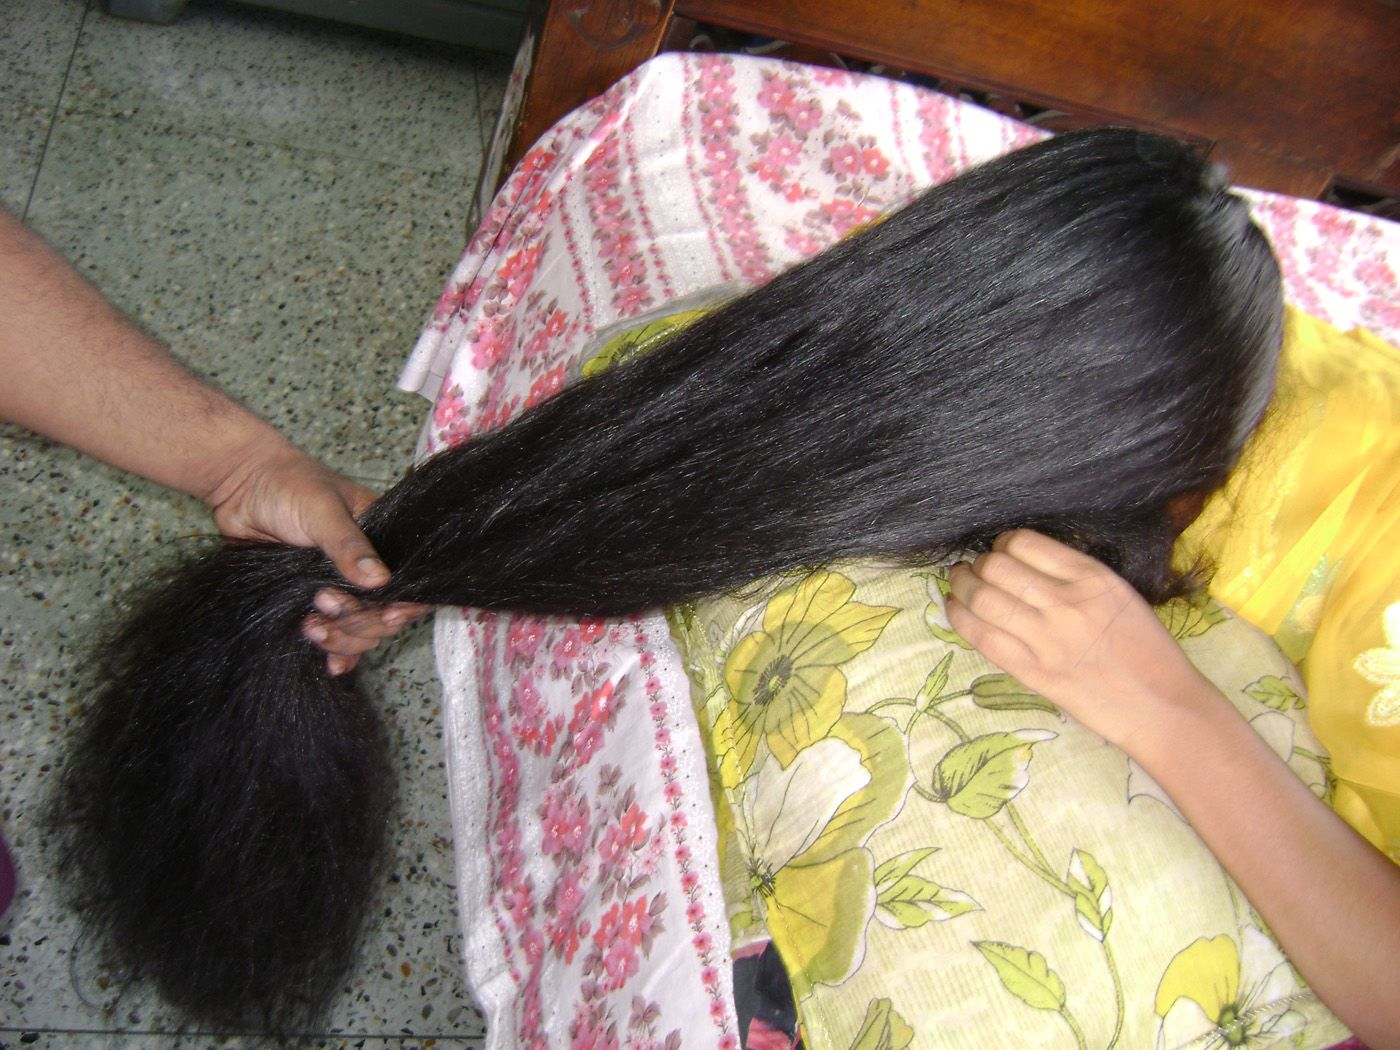 Qa Long Hair Play Video Indian Long Hair Long Hair Play Indian Long Hair Braid Long Hair Video